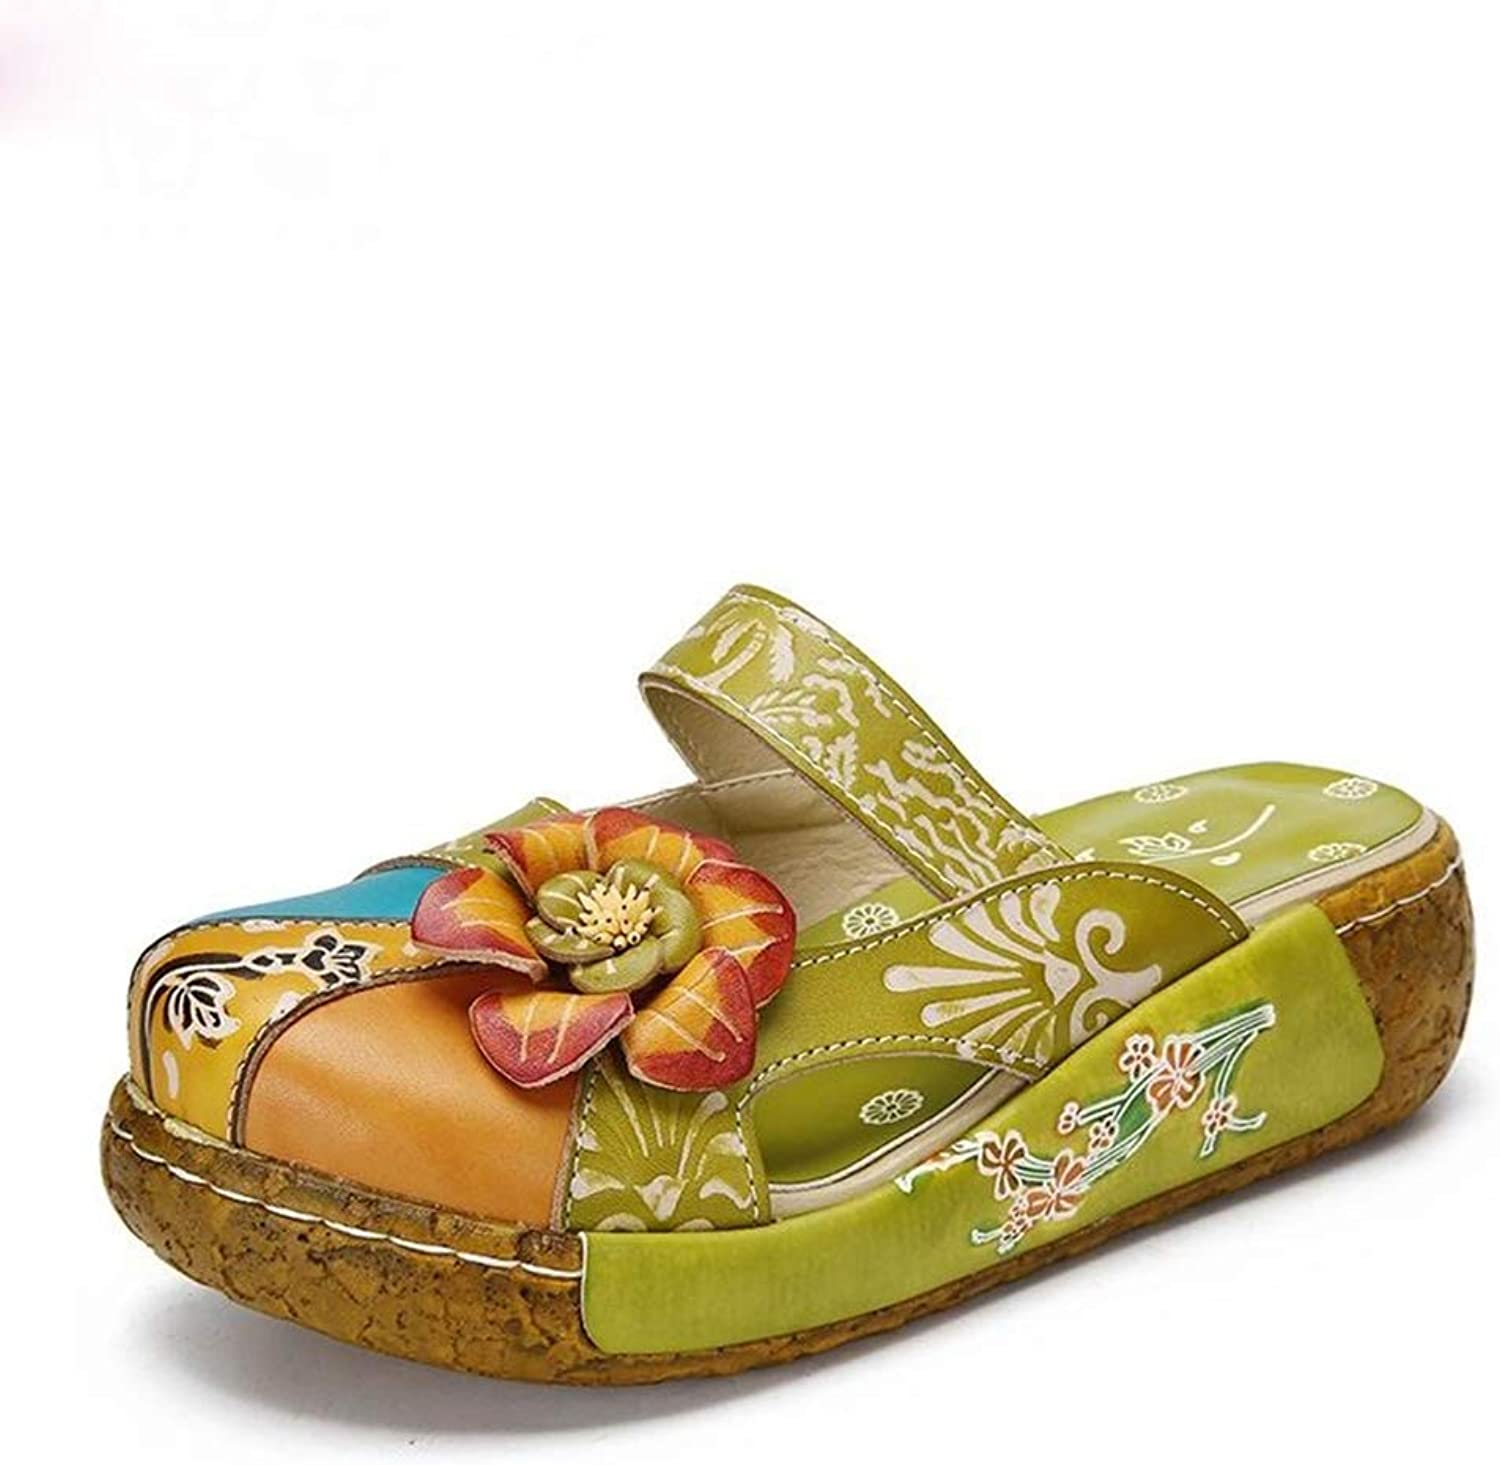 T -JULY Flower Sandals for kvinnor Genuine läder Handgjorda Slippers Platform Clogs Ladies skor